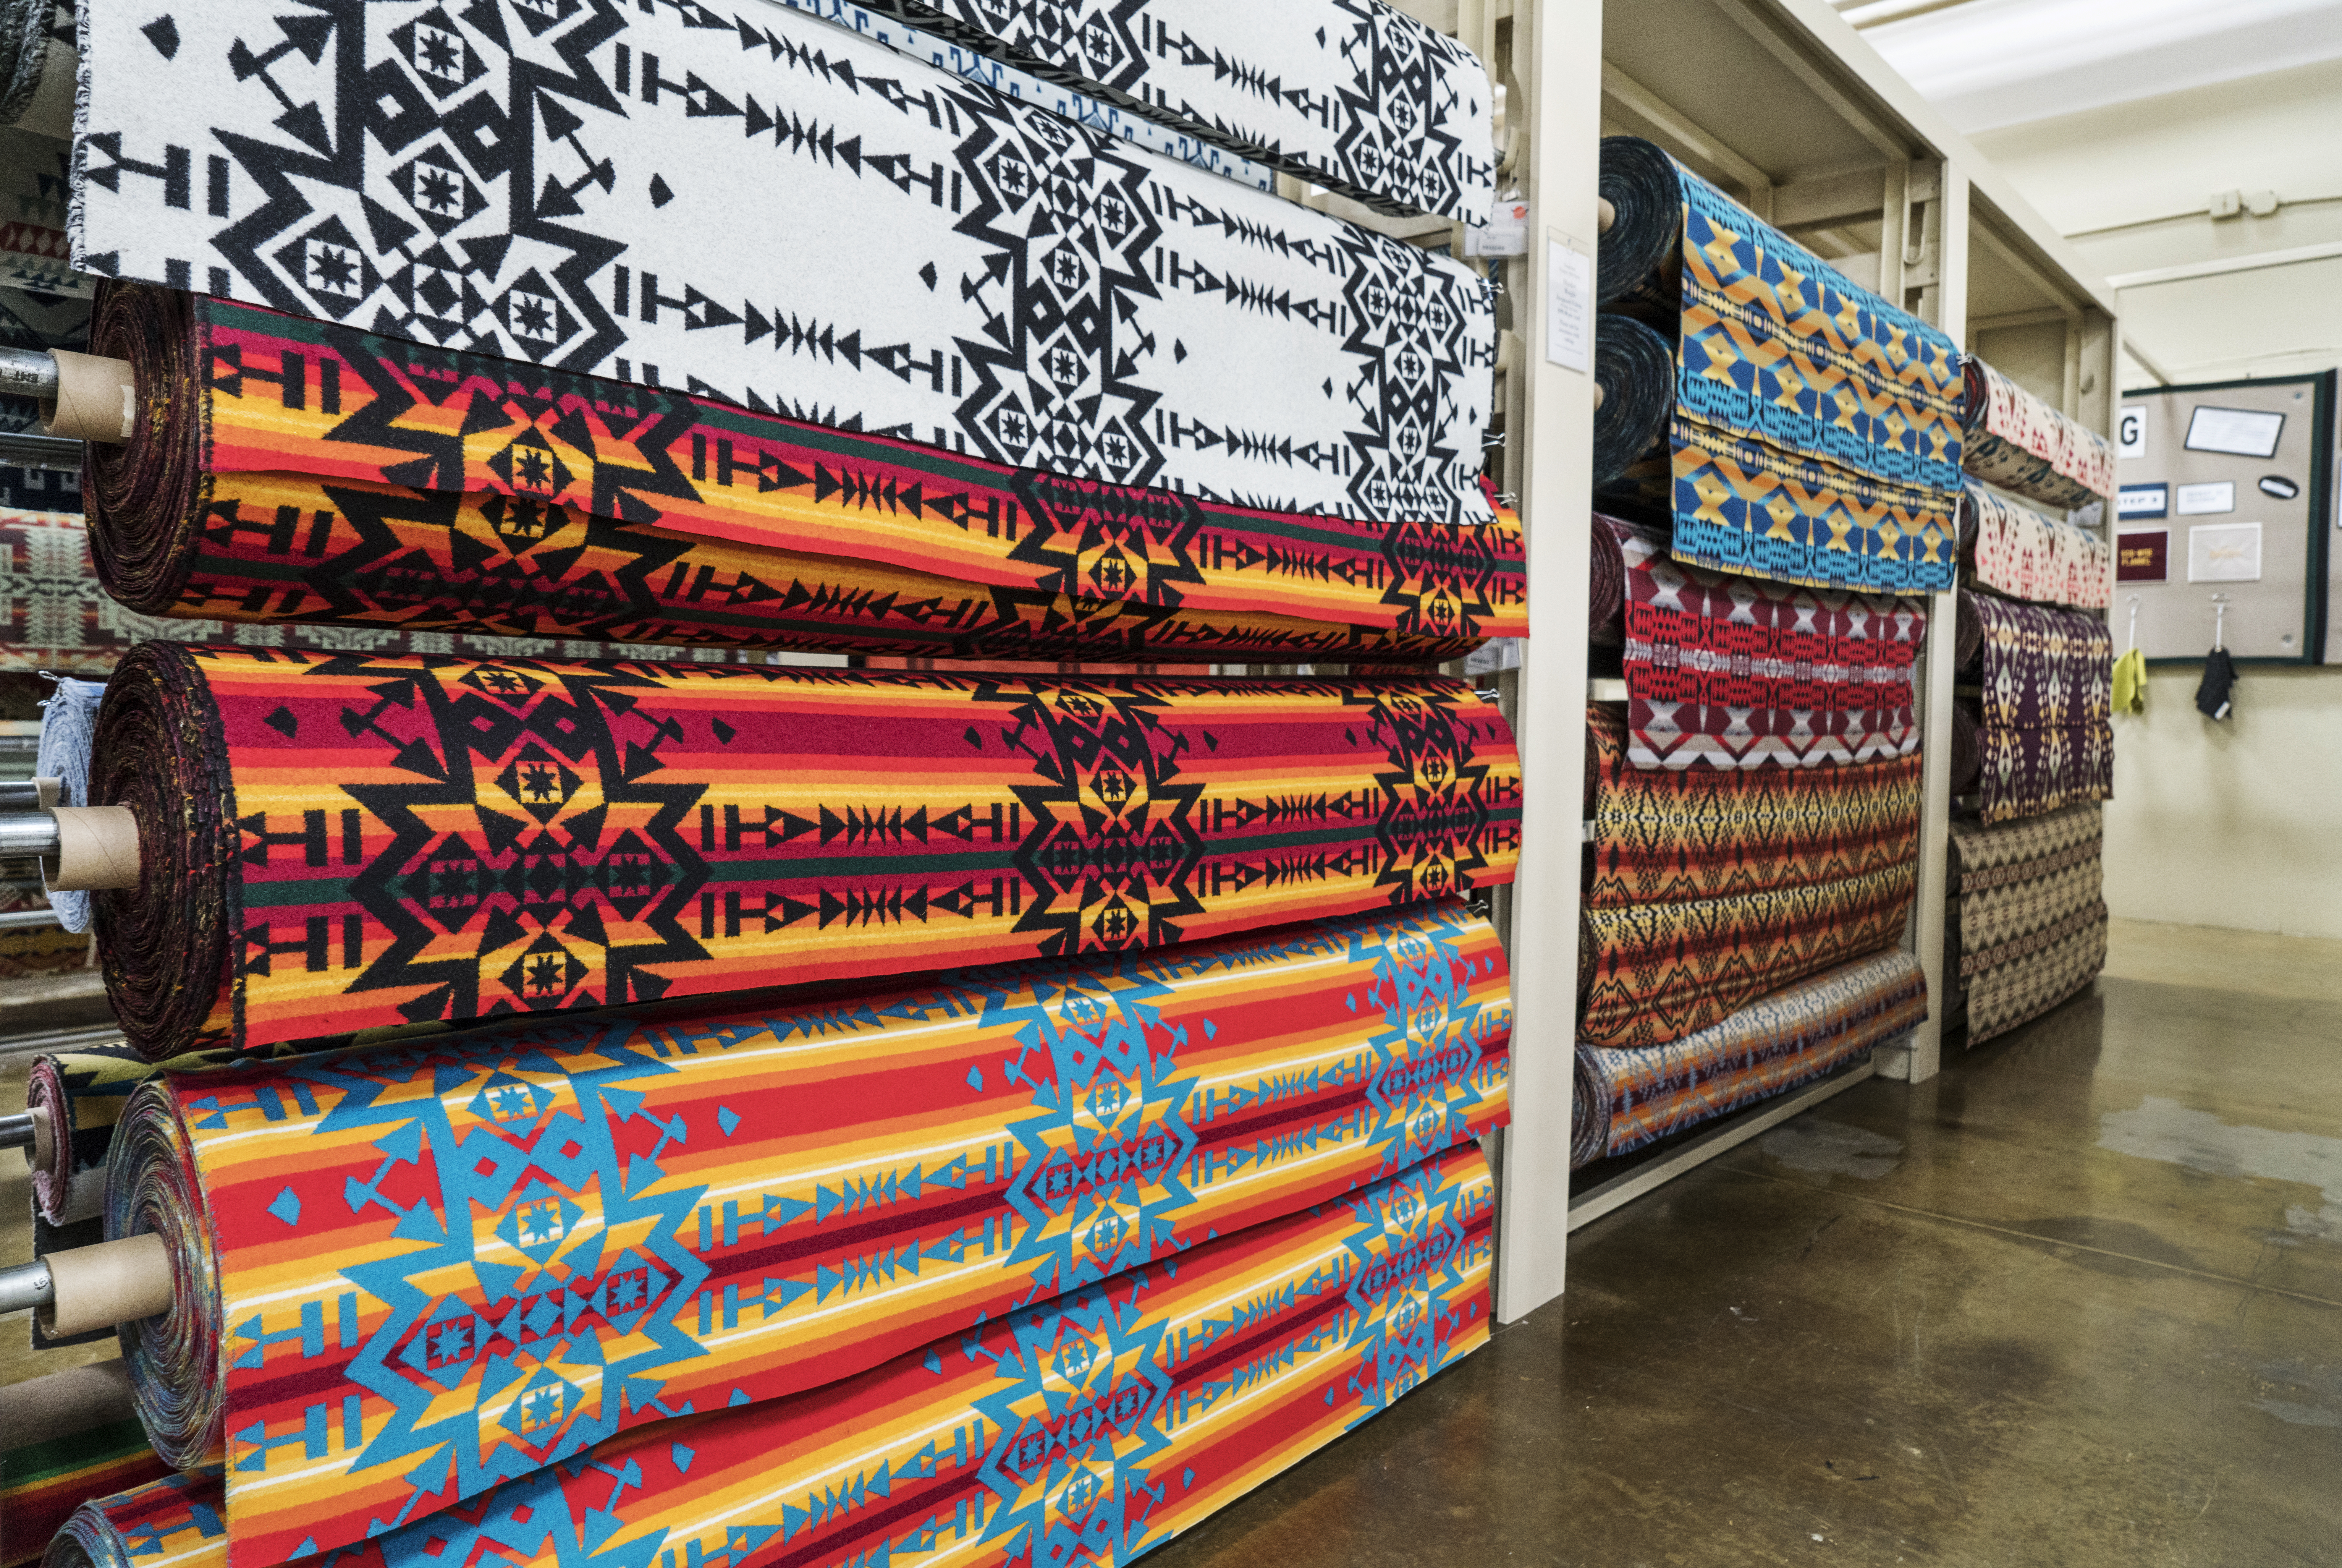 Picture taken in the Woolen Mill Store of rolls of Pendleton wool fabric in white, red, turquoise, blue, brown and yellow patterns.